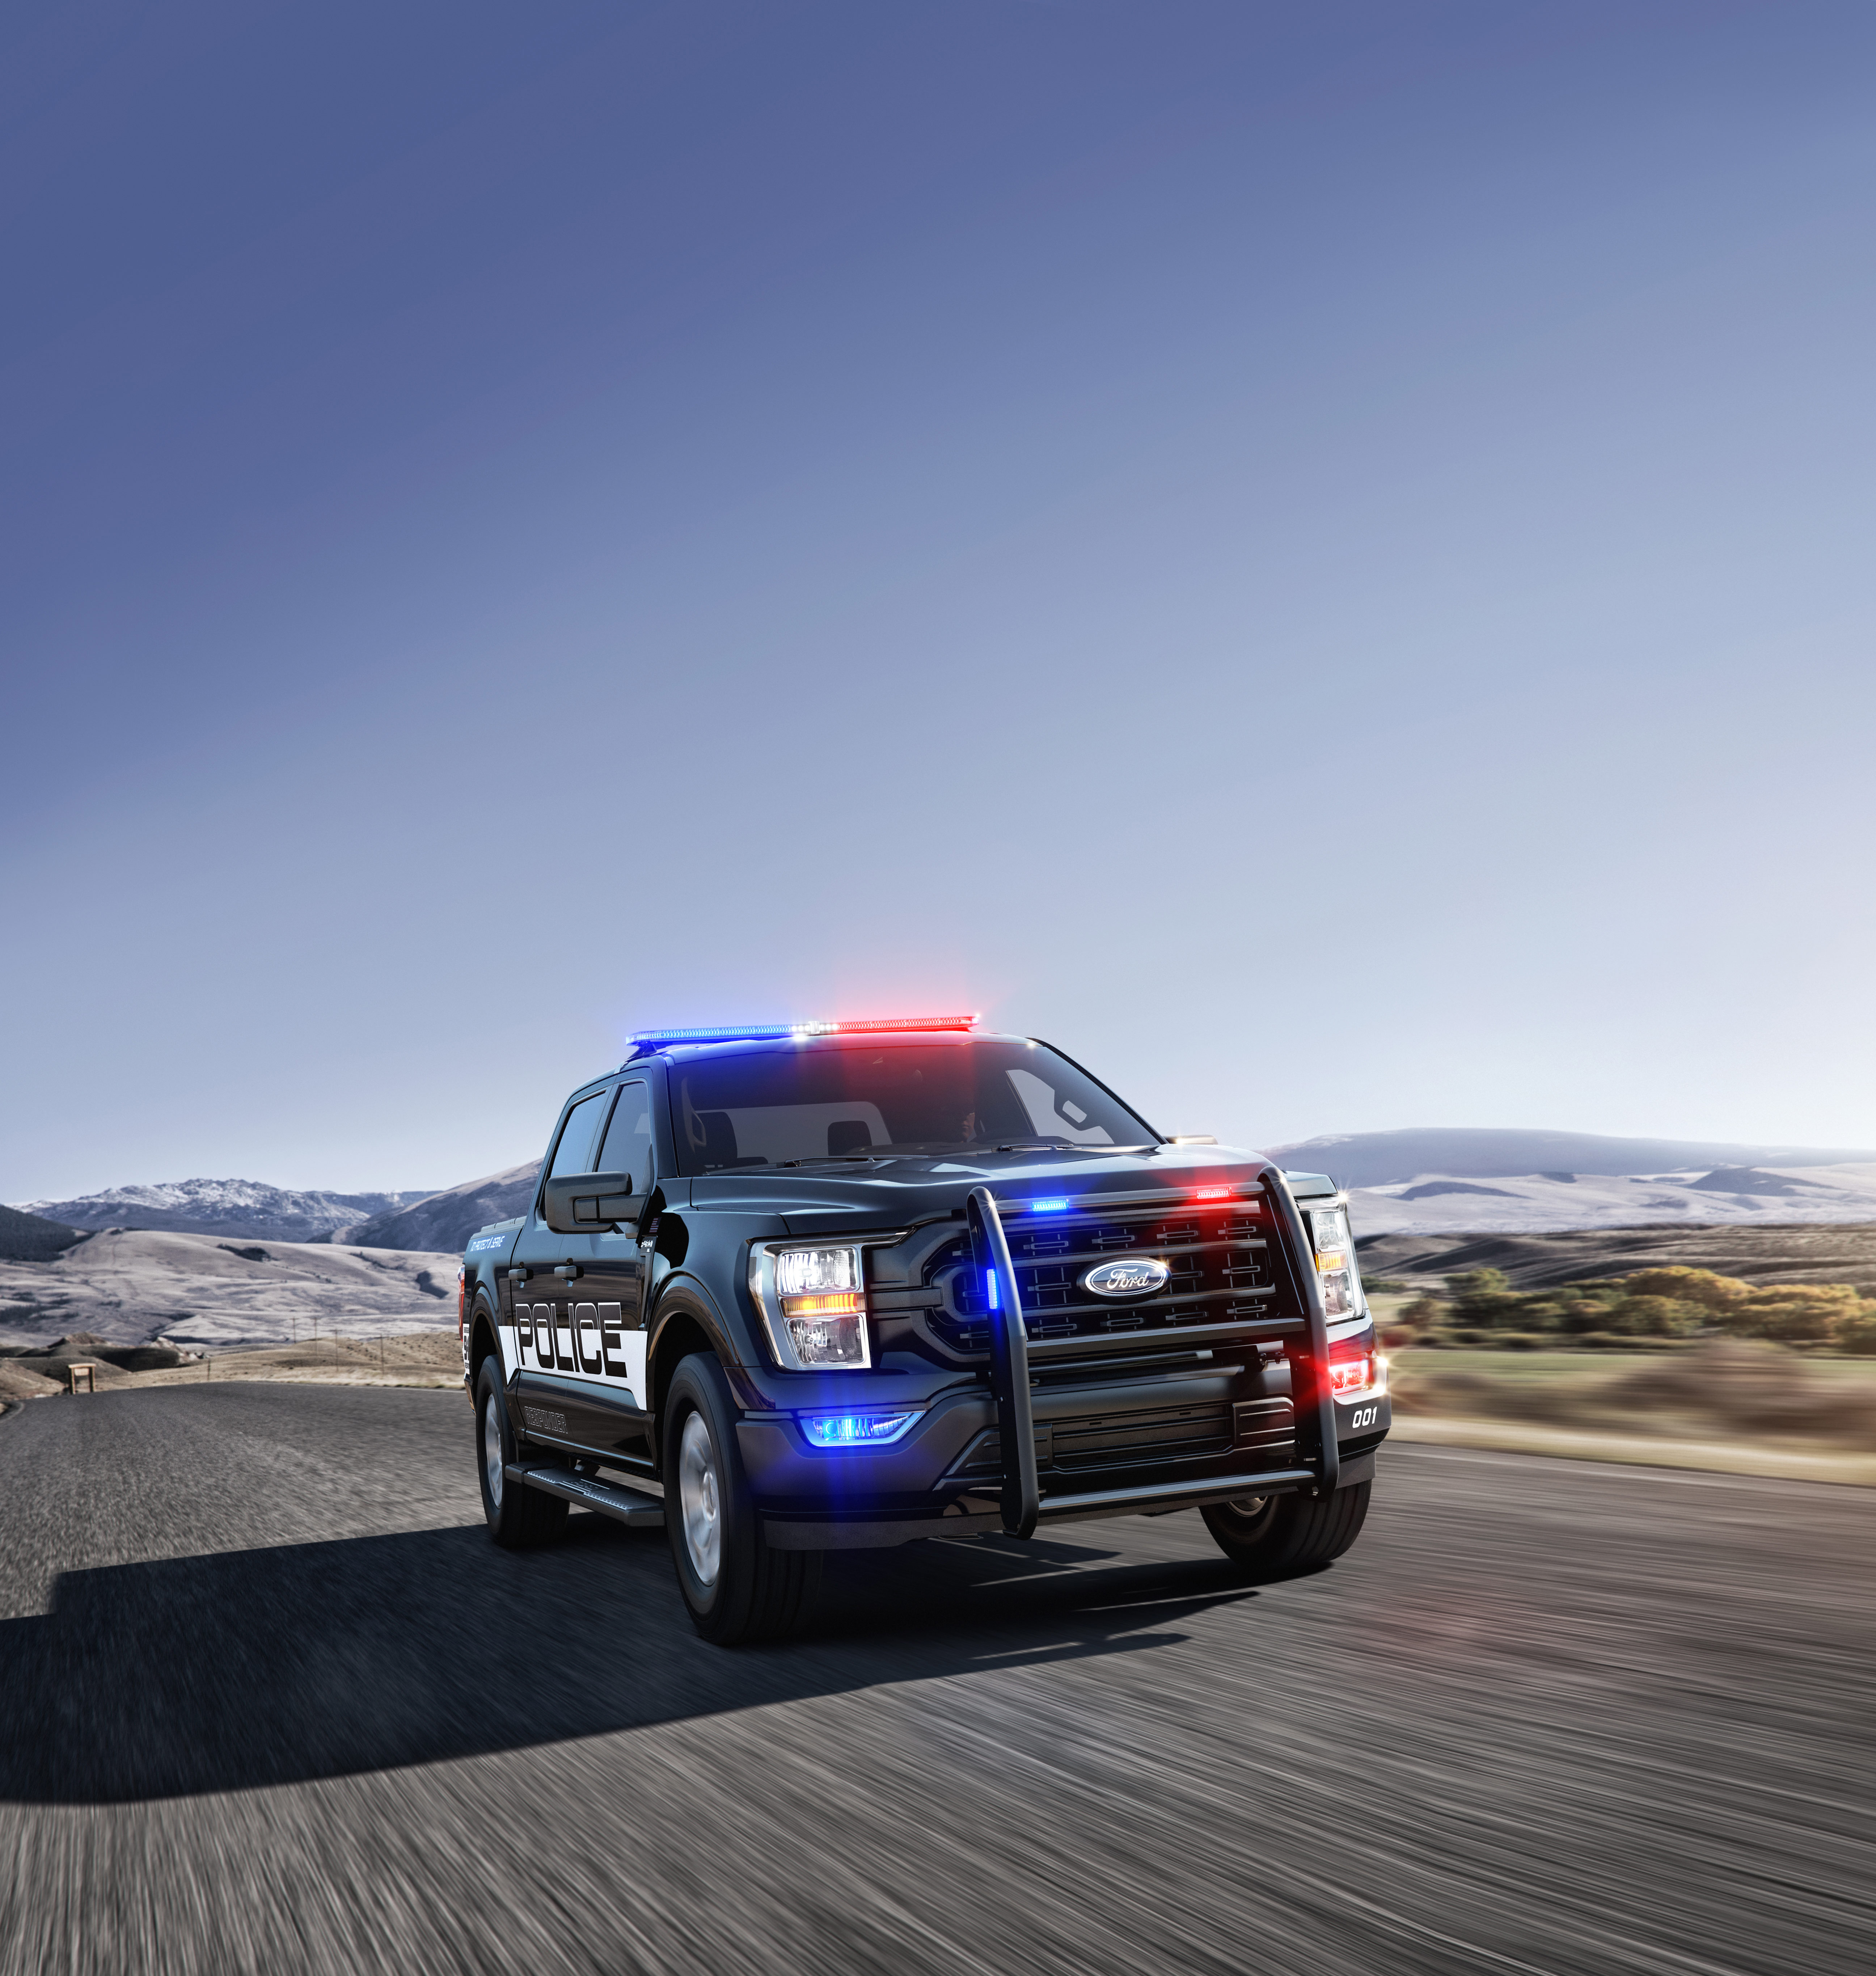 All-new 2021 F-150 Police Responder ®, America's only pursuit-rated pickup purpose-built for law enforcement, recorded faster 0-60 mph, 0-100 mph and quarter-mile times than any other police vehicle in recent Michigan State Police and Los Angeles County Sheriff's Department tests